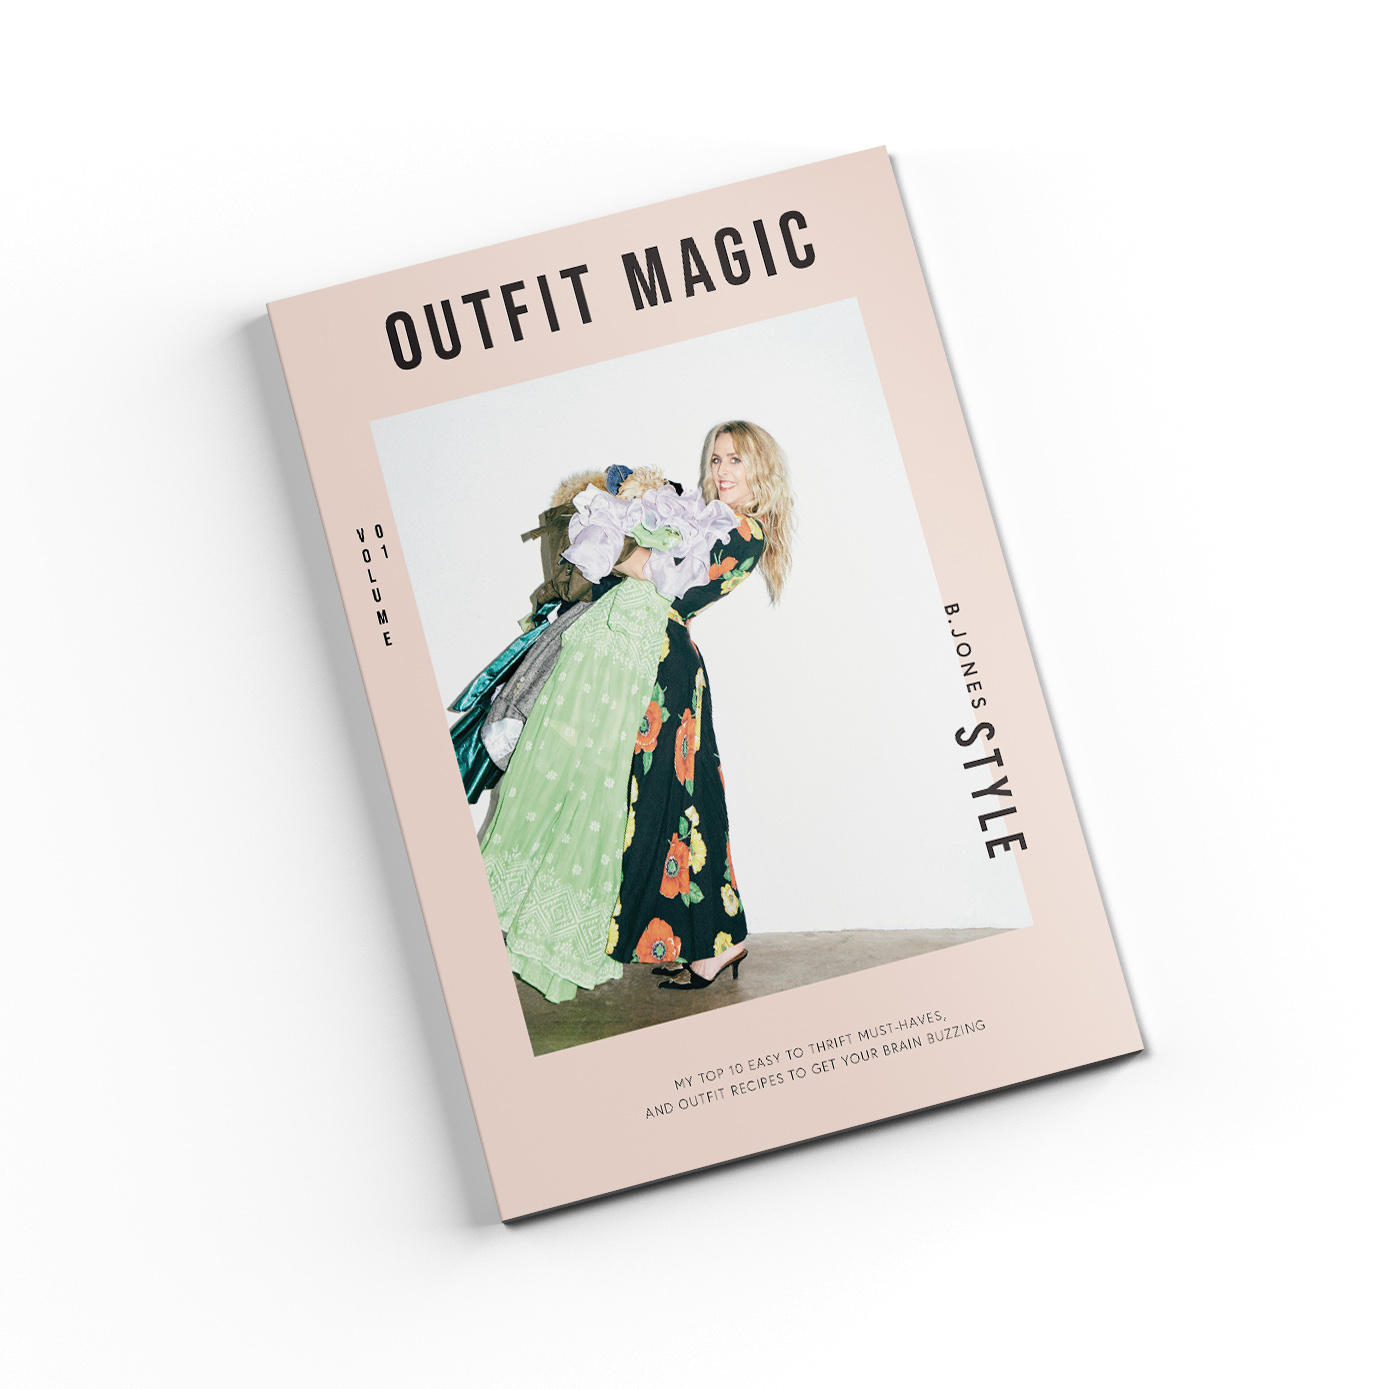 Outfit magic volume one - The first volume in a series of e-books, to help you style like b. jones style!